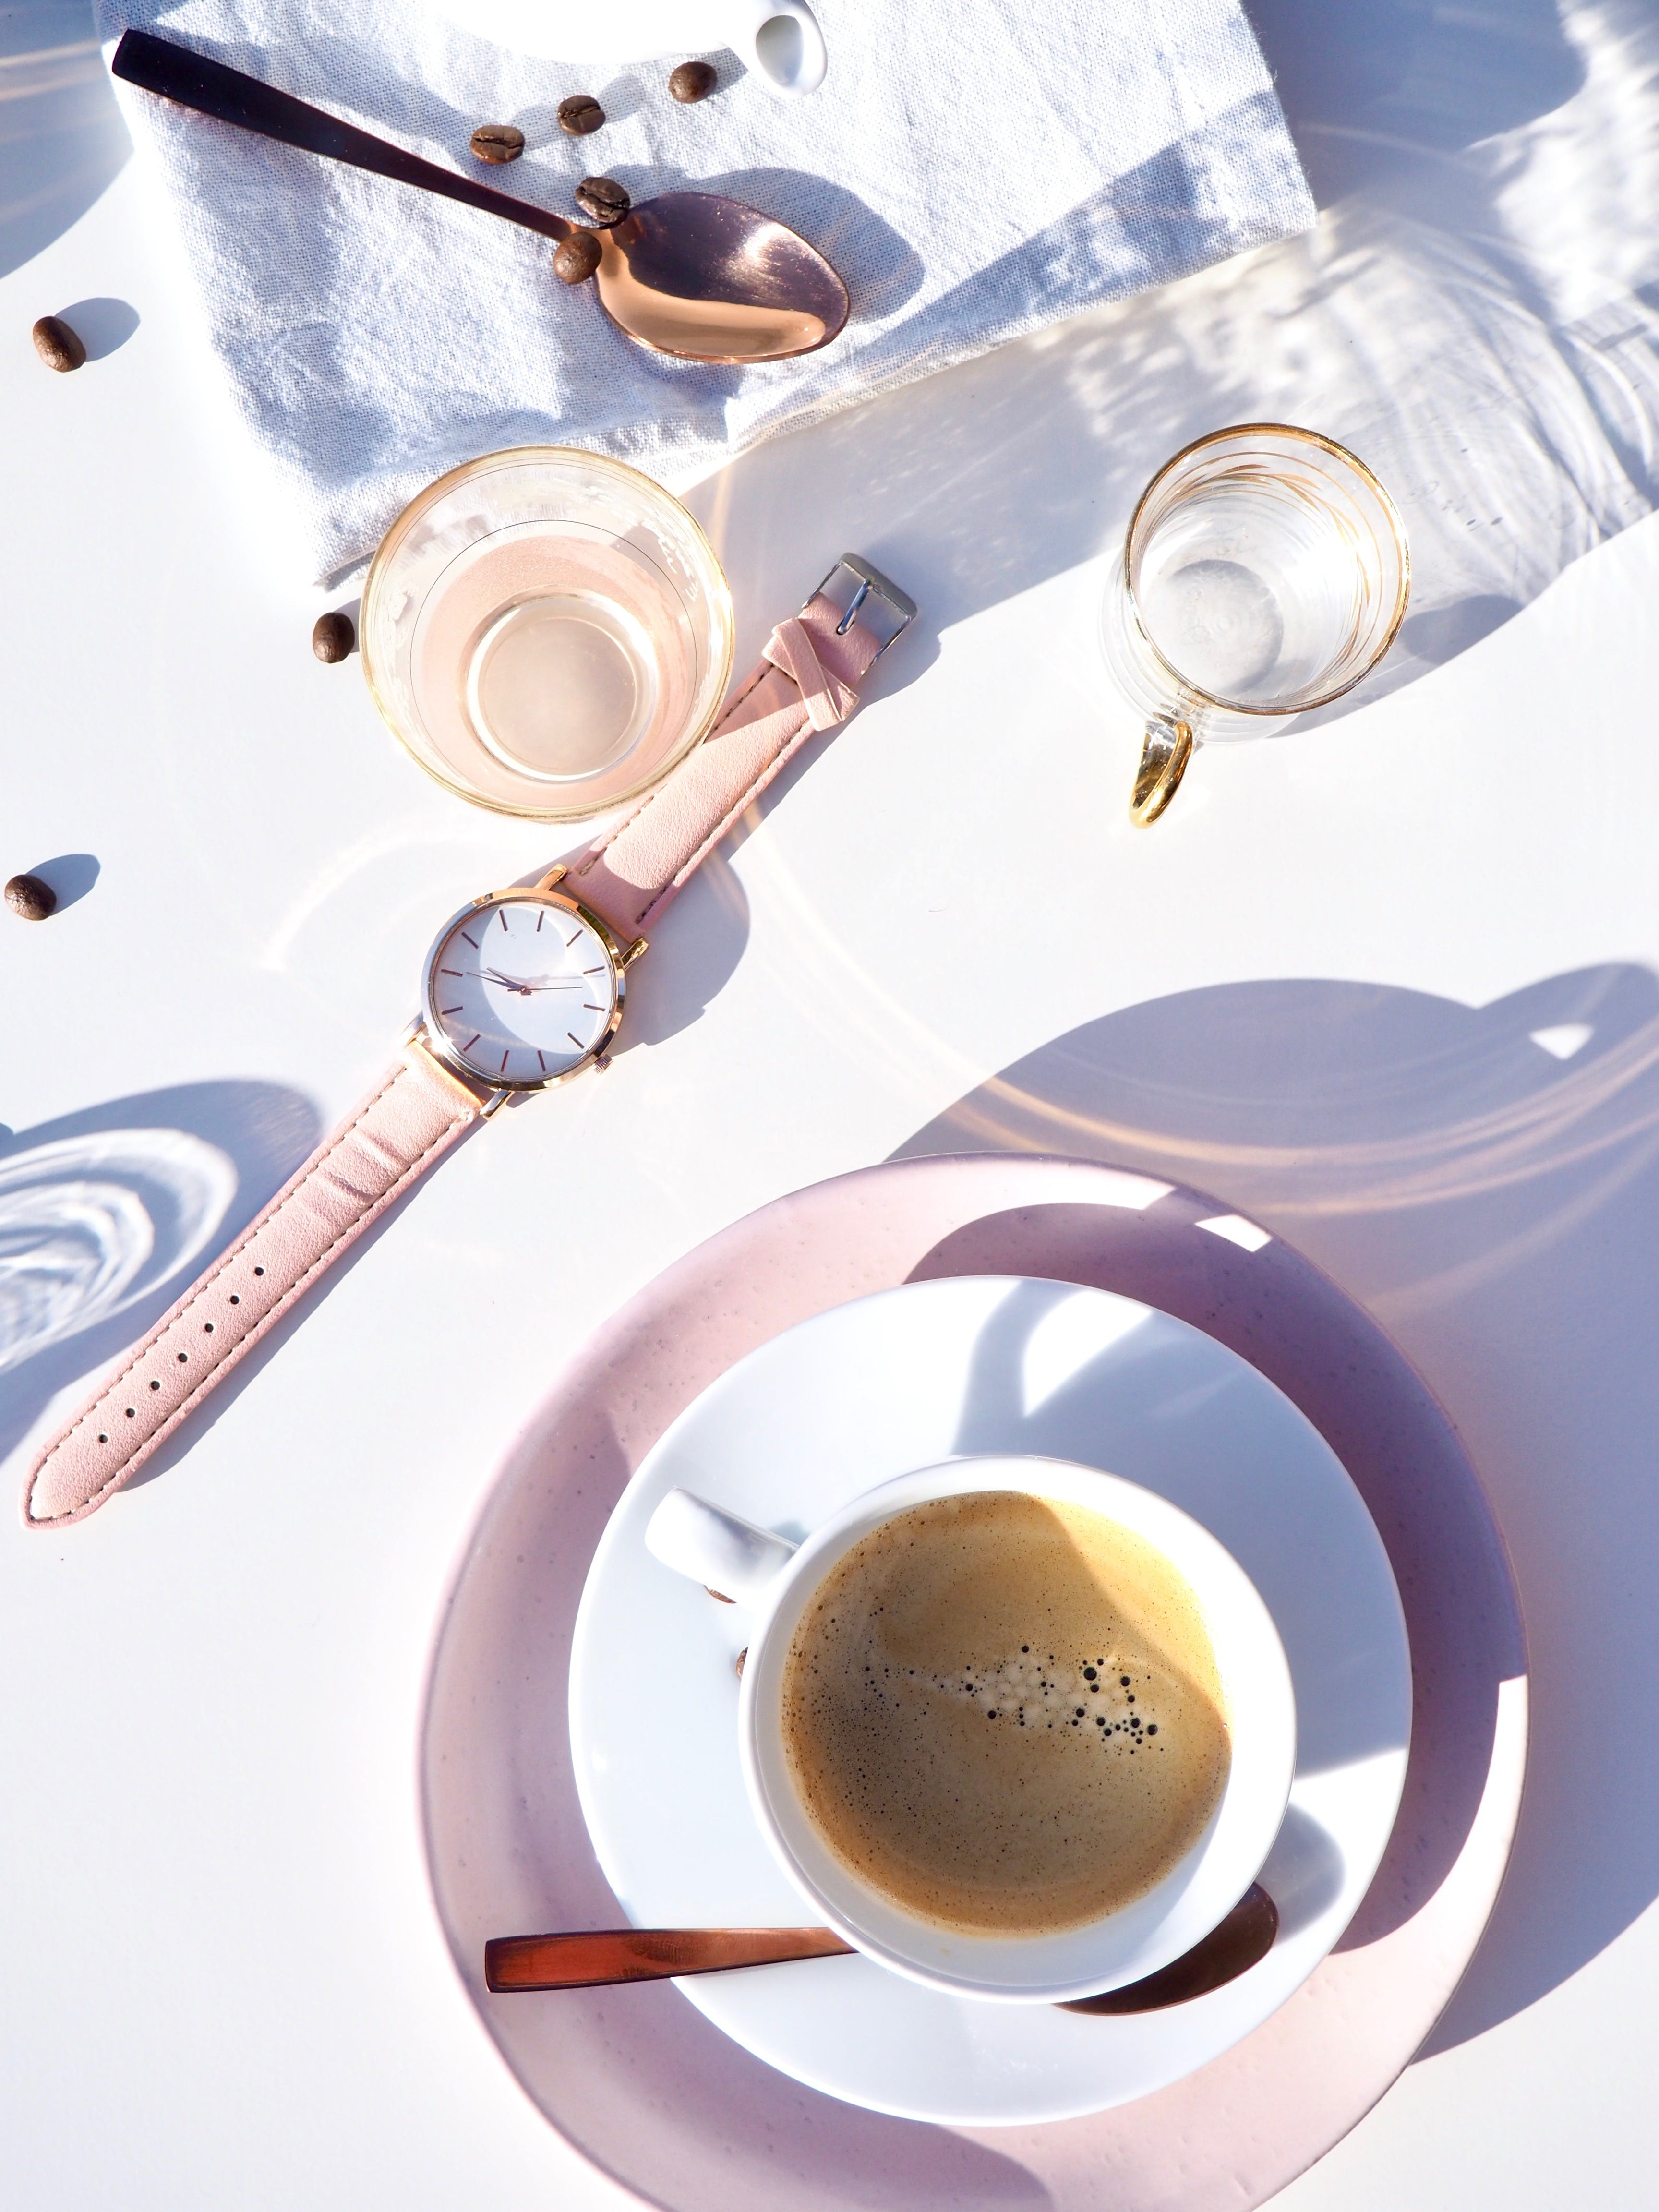 White Ceramic Cup on Saucer Near Gold-colored Analog Watch on Table